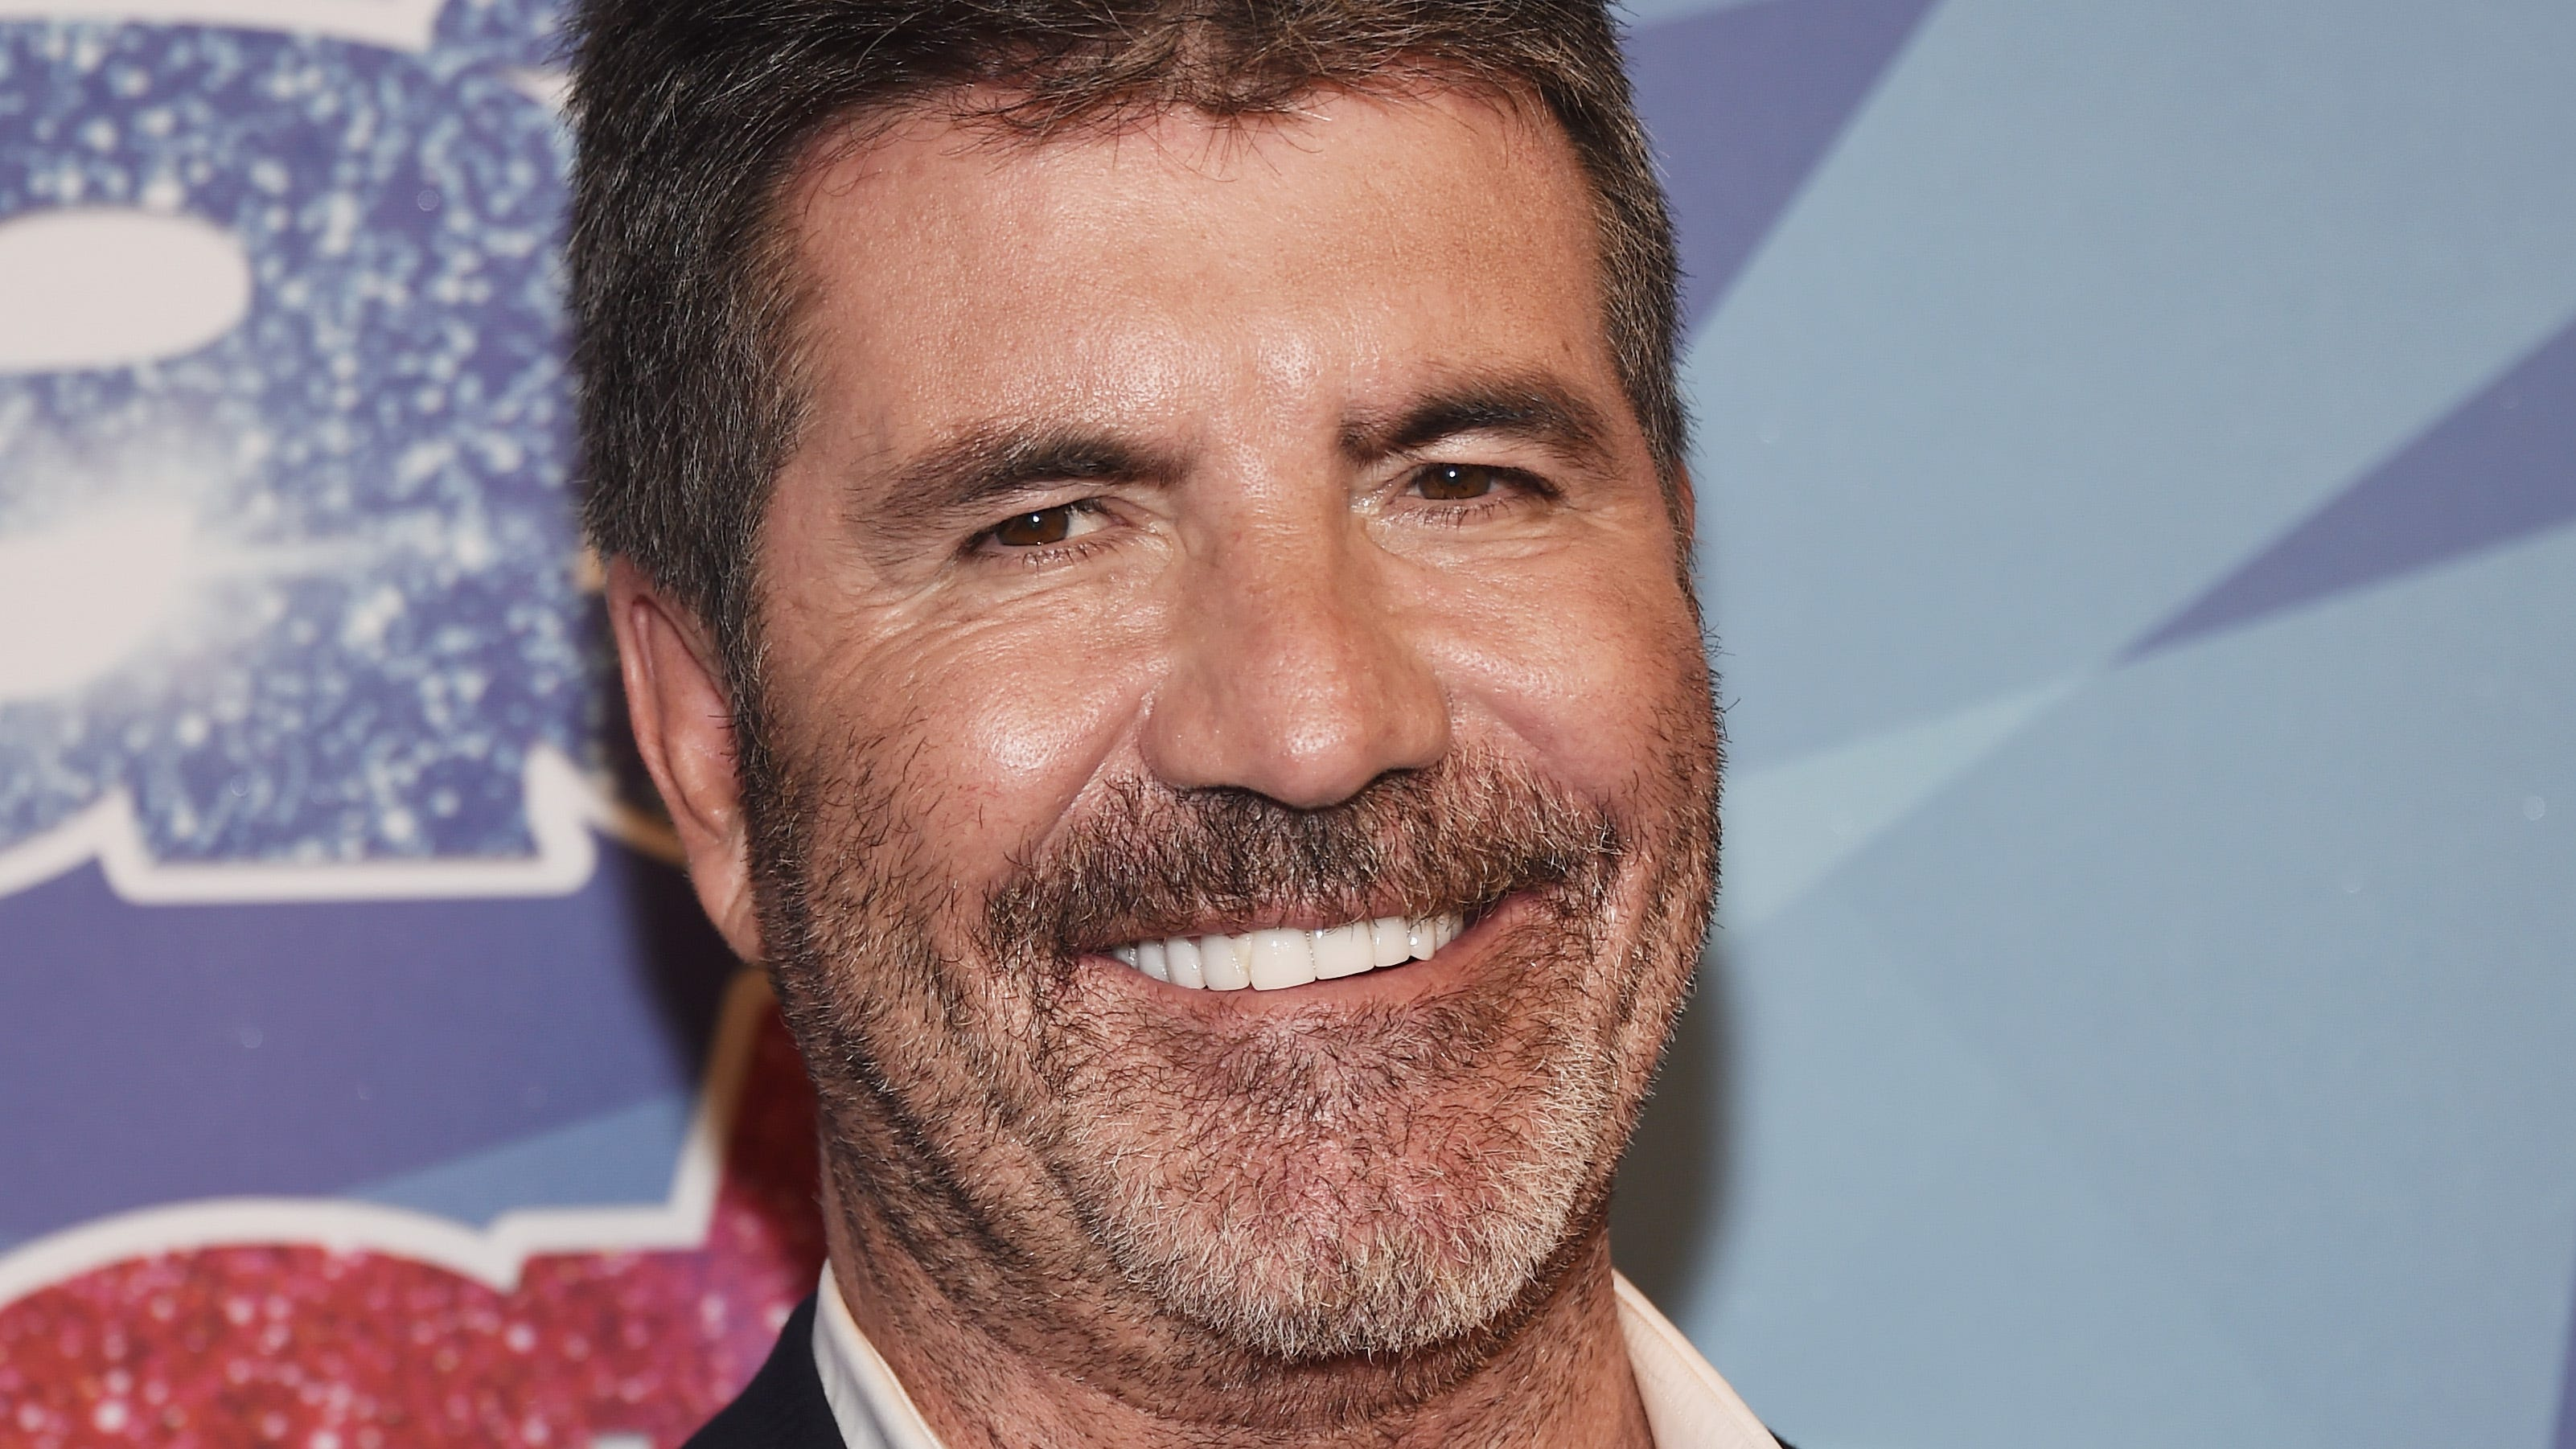 """HOLLYWOOD, CA - SEPTEMBER 20:  Simon Cowell attends NBC's """"America's Got Talent"""" Season 12 Finale at the Dolby Theatre on September 20, 2017 in Hollywood, California.  (Photo by Amanda Edwards/WireImage) ORG XMIT: 775044908 ORIG FILE ID: 850365394"""